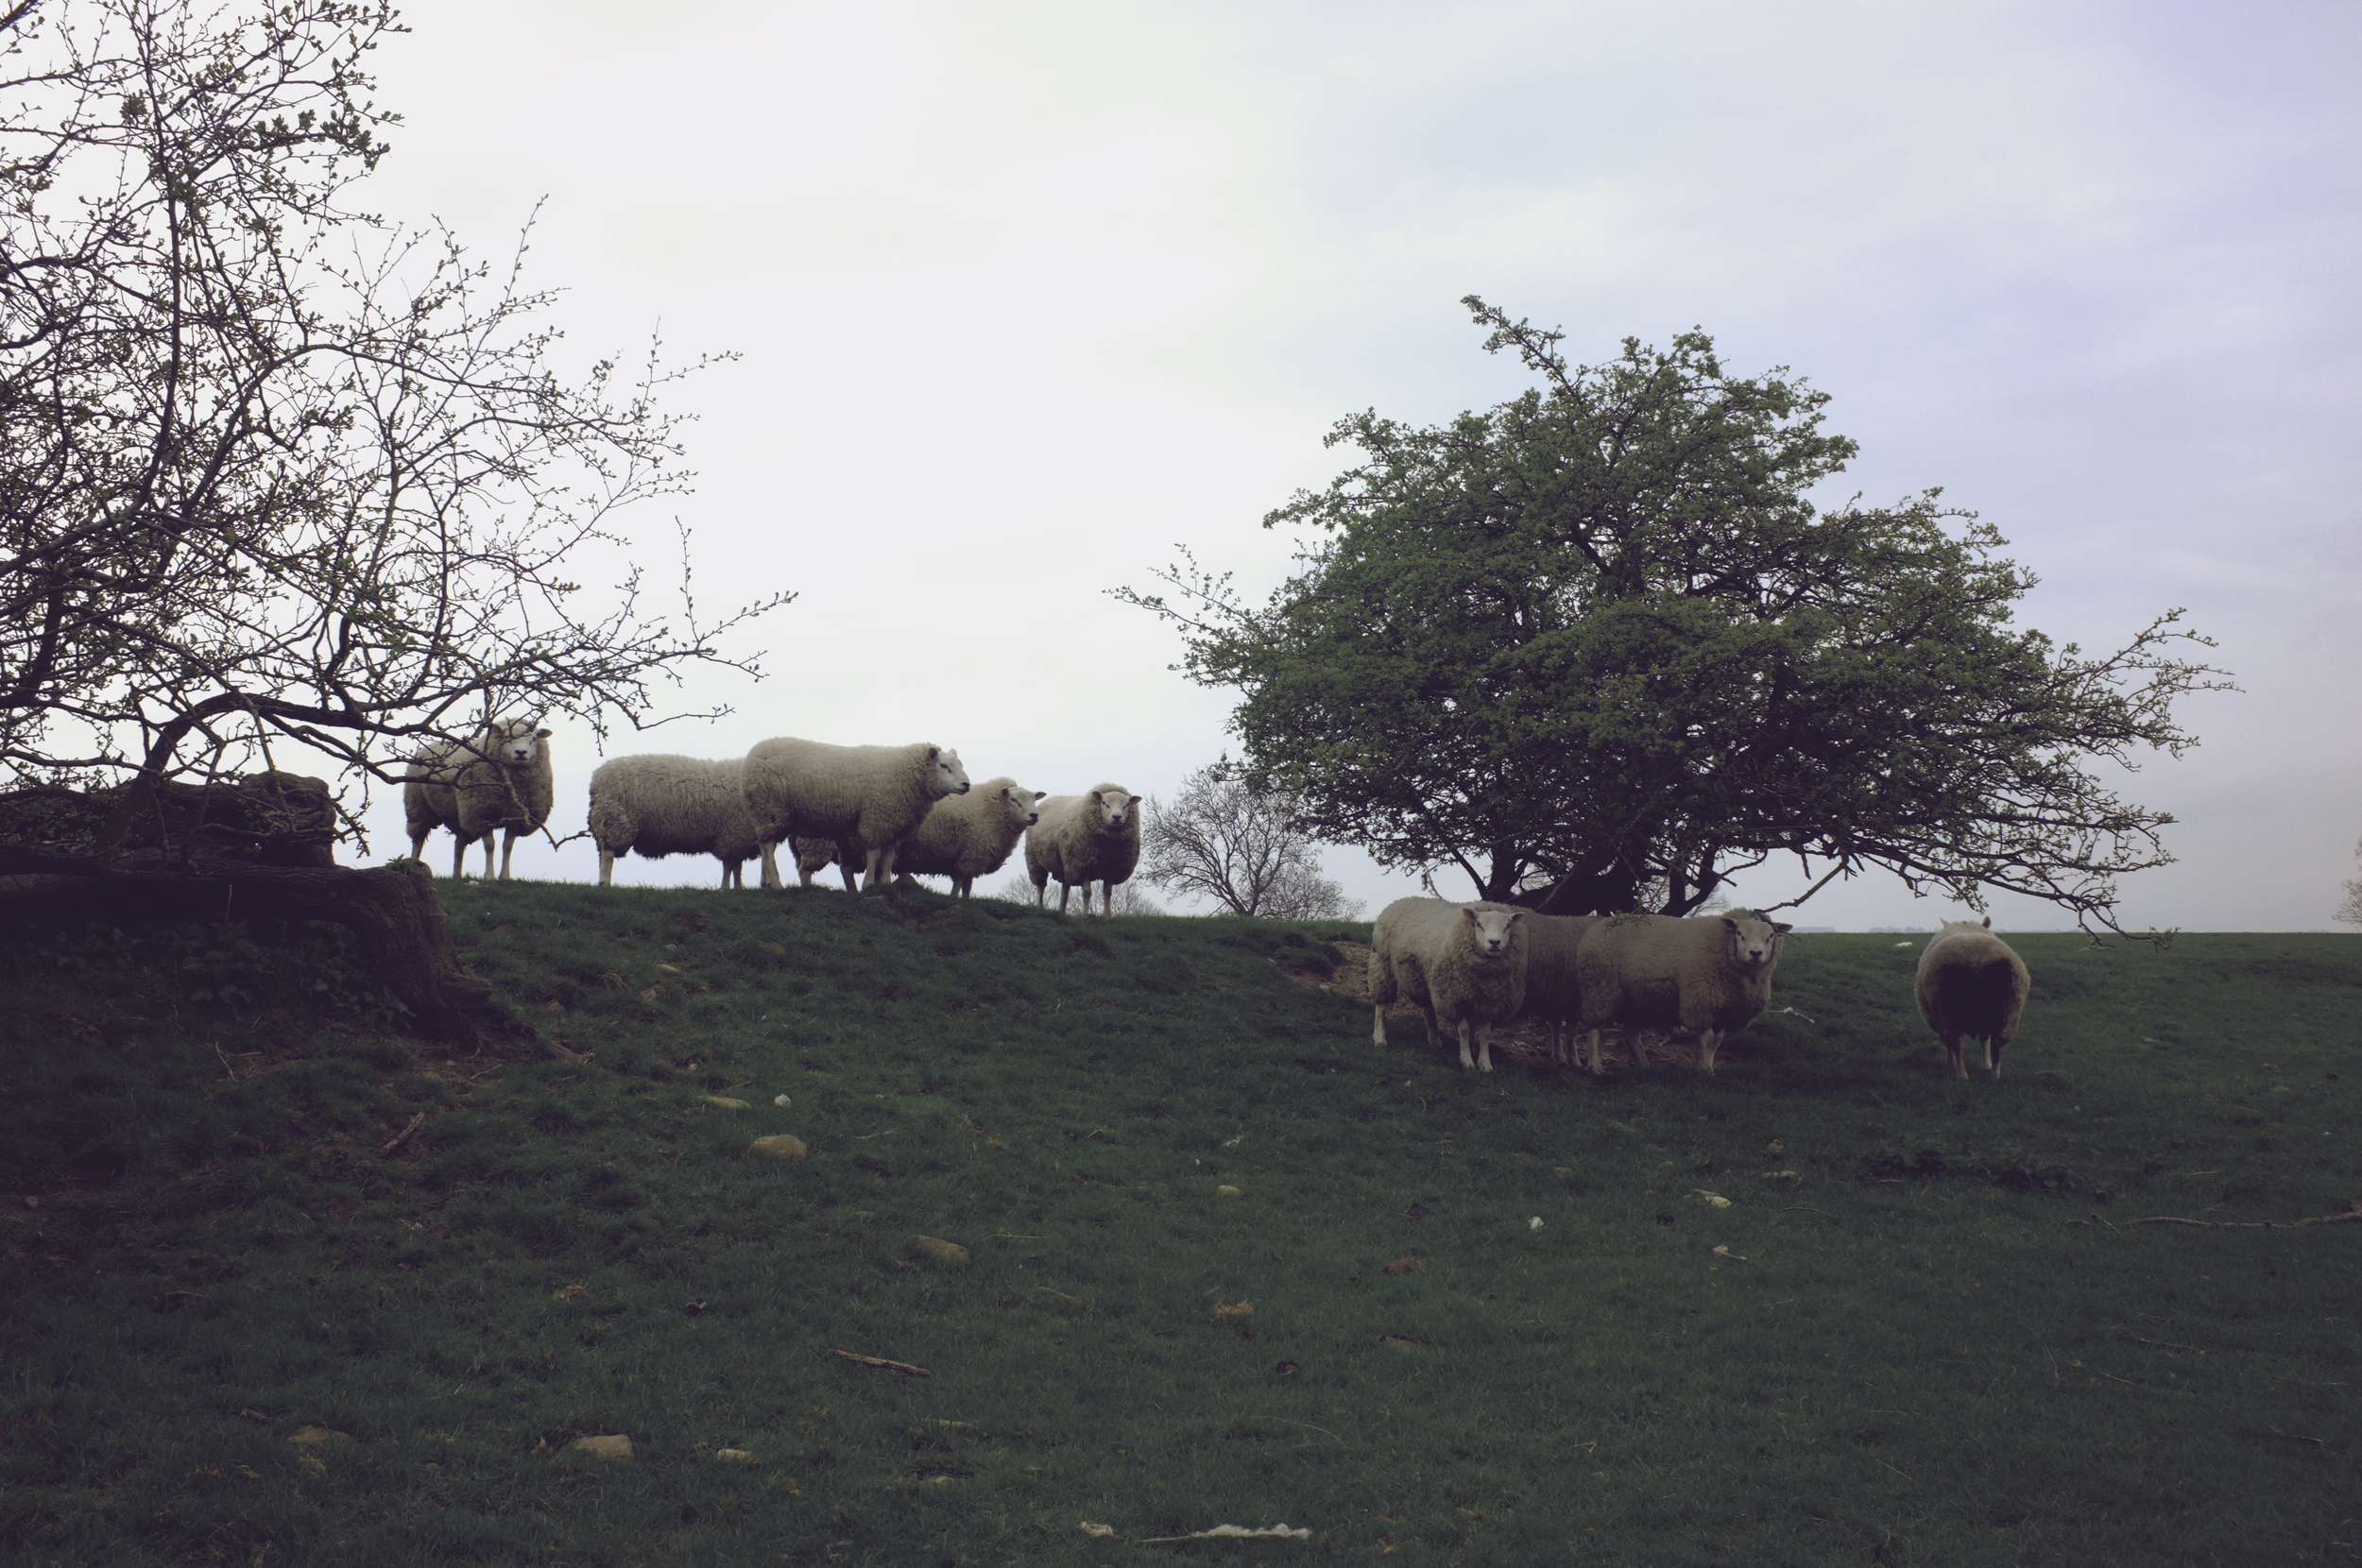 These sheep stand next to Grandpa's resting place, now where Grannie will rest also, overlooking Meadowbarn, Bridge Banks, and the glorious Yorkshire countryside.